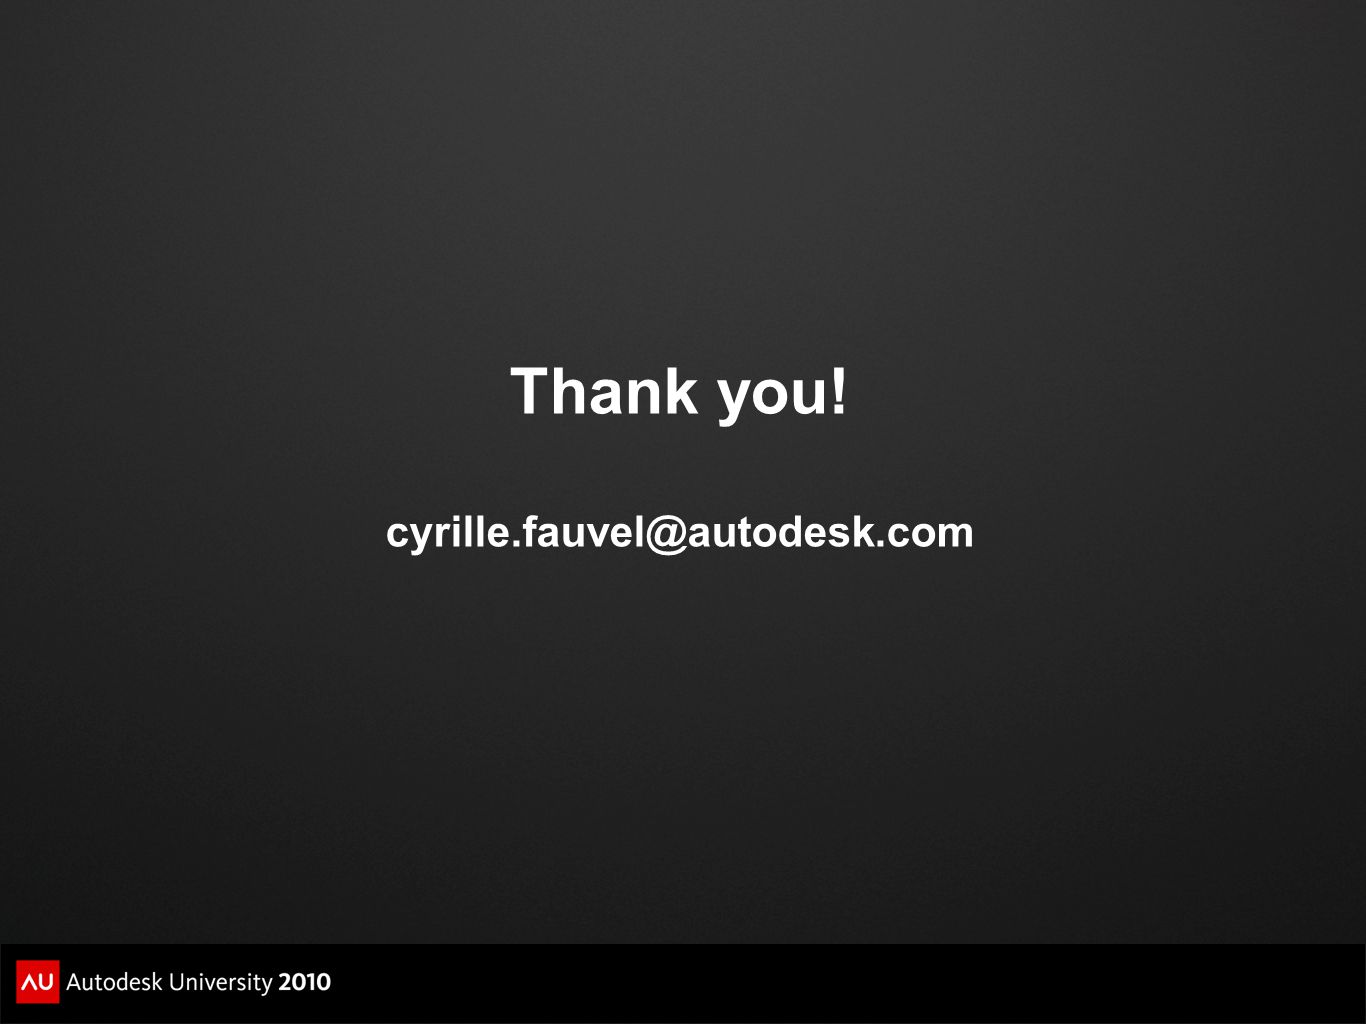 Thank you! cyrille.fauvel@autodesk.com